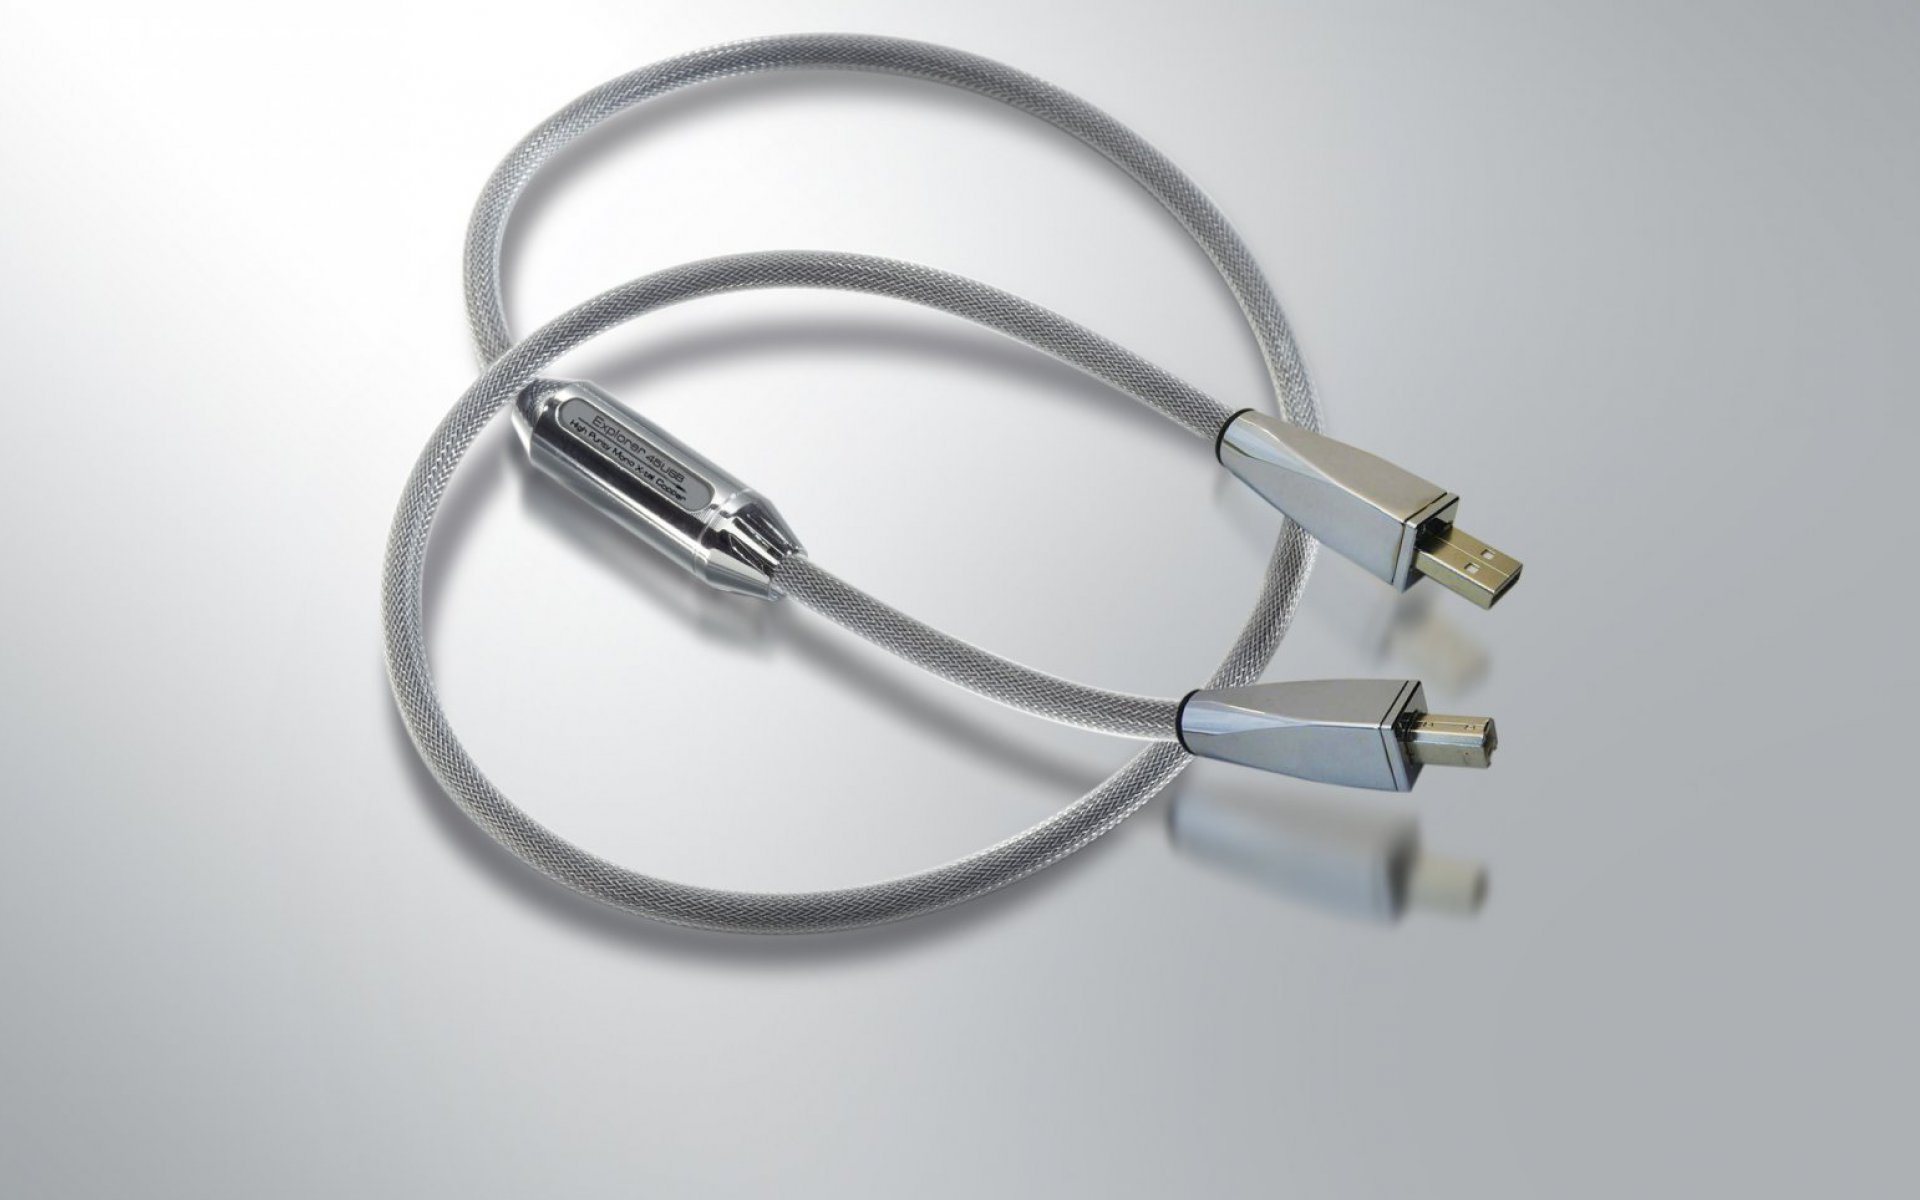 Siltech Explorer 45 USB Audio Cable